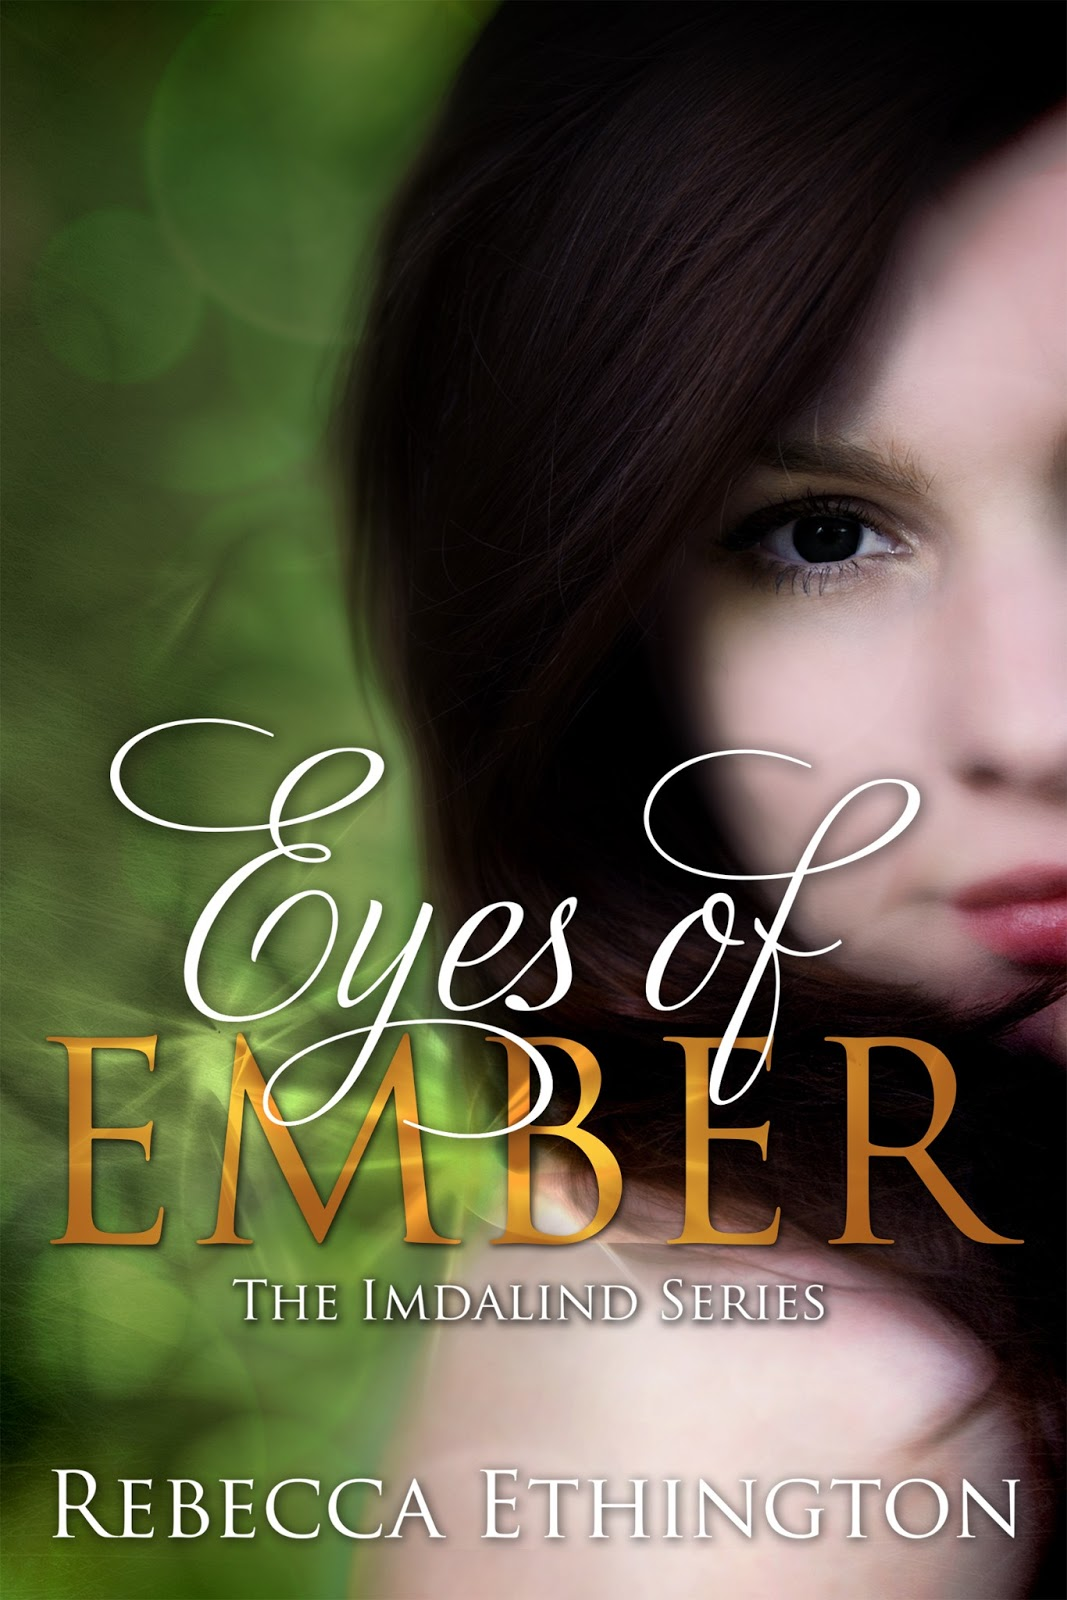 Eyes of ember by rebecca ethington cover reveal giveaway fandeluxe Choice Image